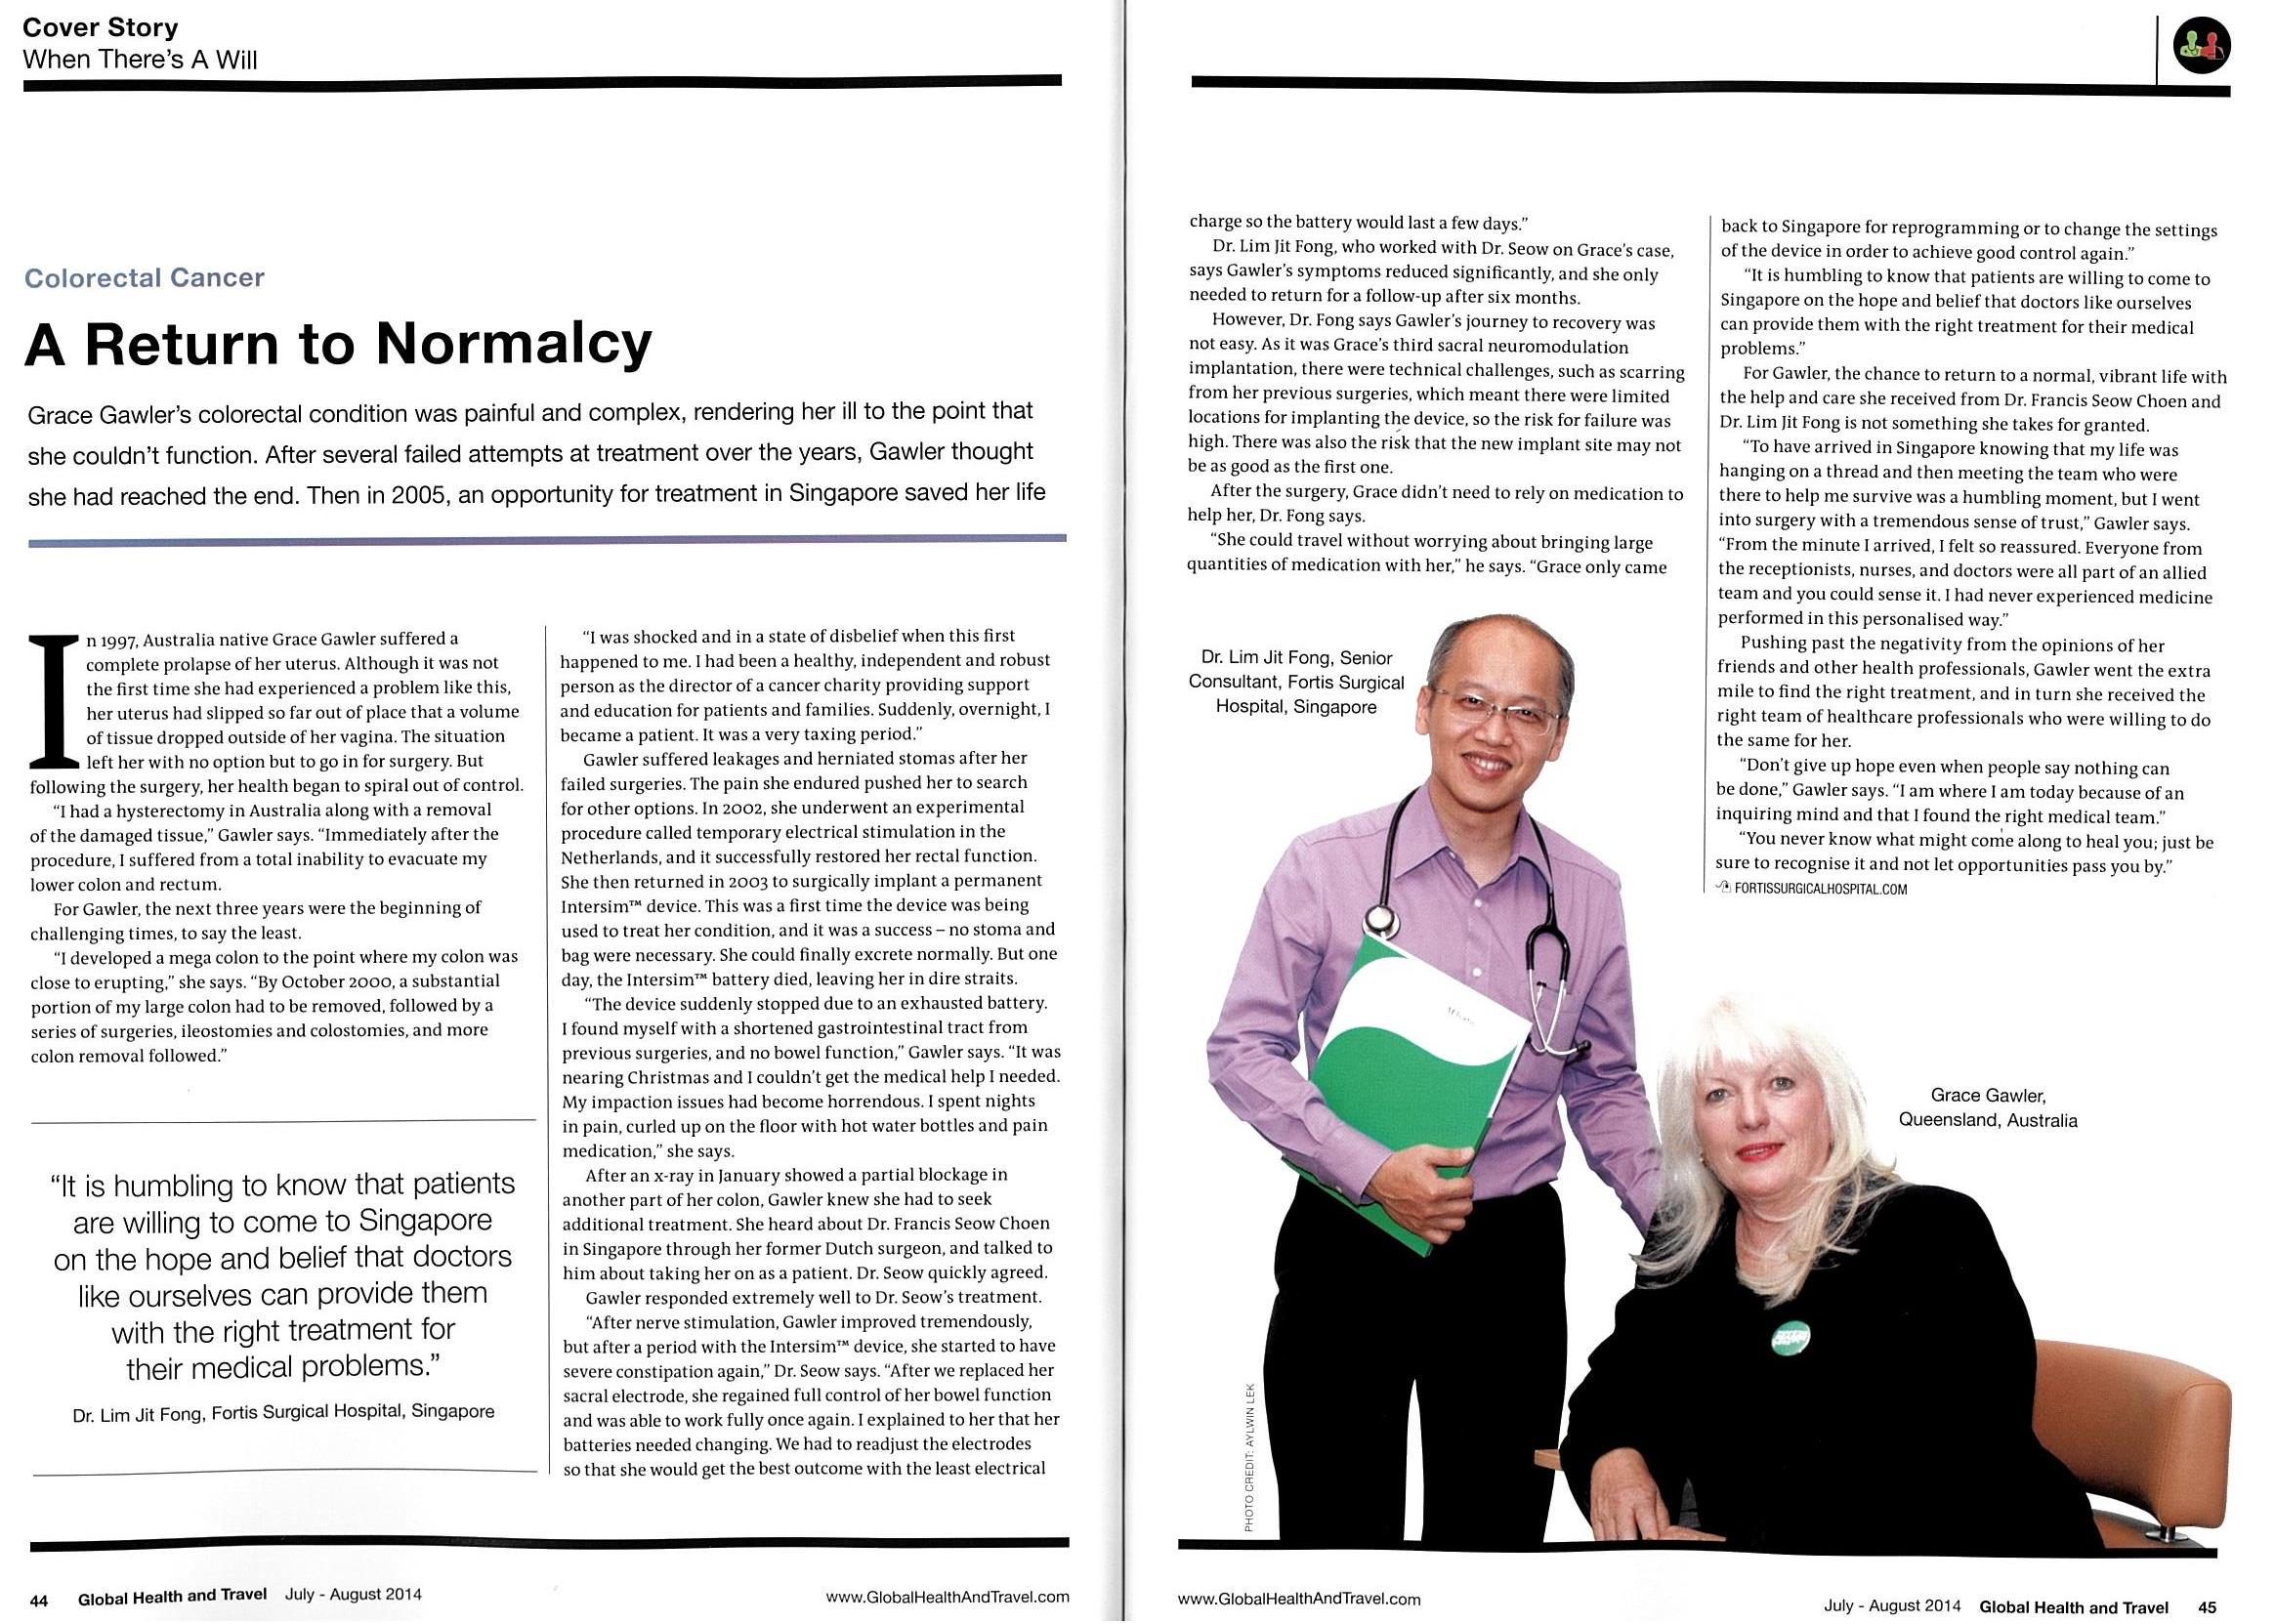 Grace Gawler July-August 2014_Global Health and Travel_A Return to Normalcy_